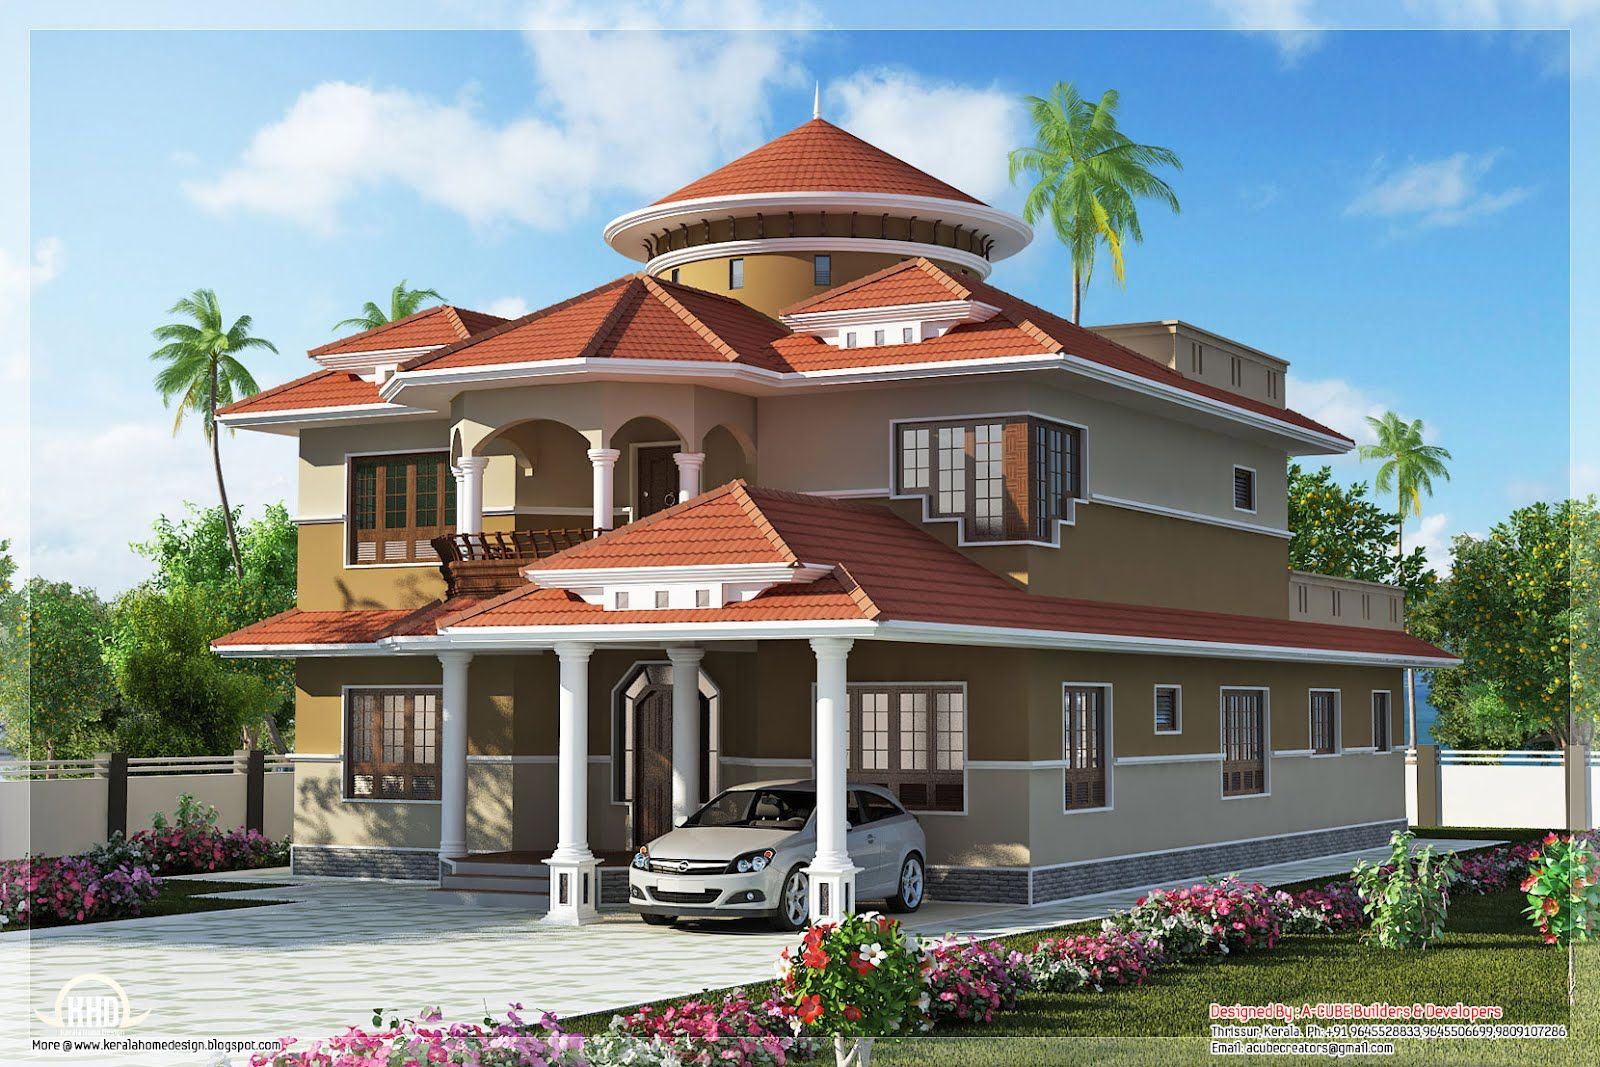 Dream home designs 4 dream home house design 1600 x 1067 My dream homes